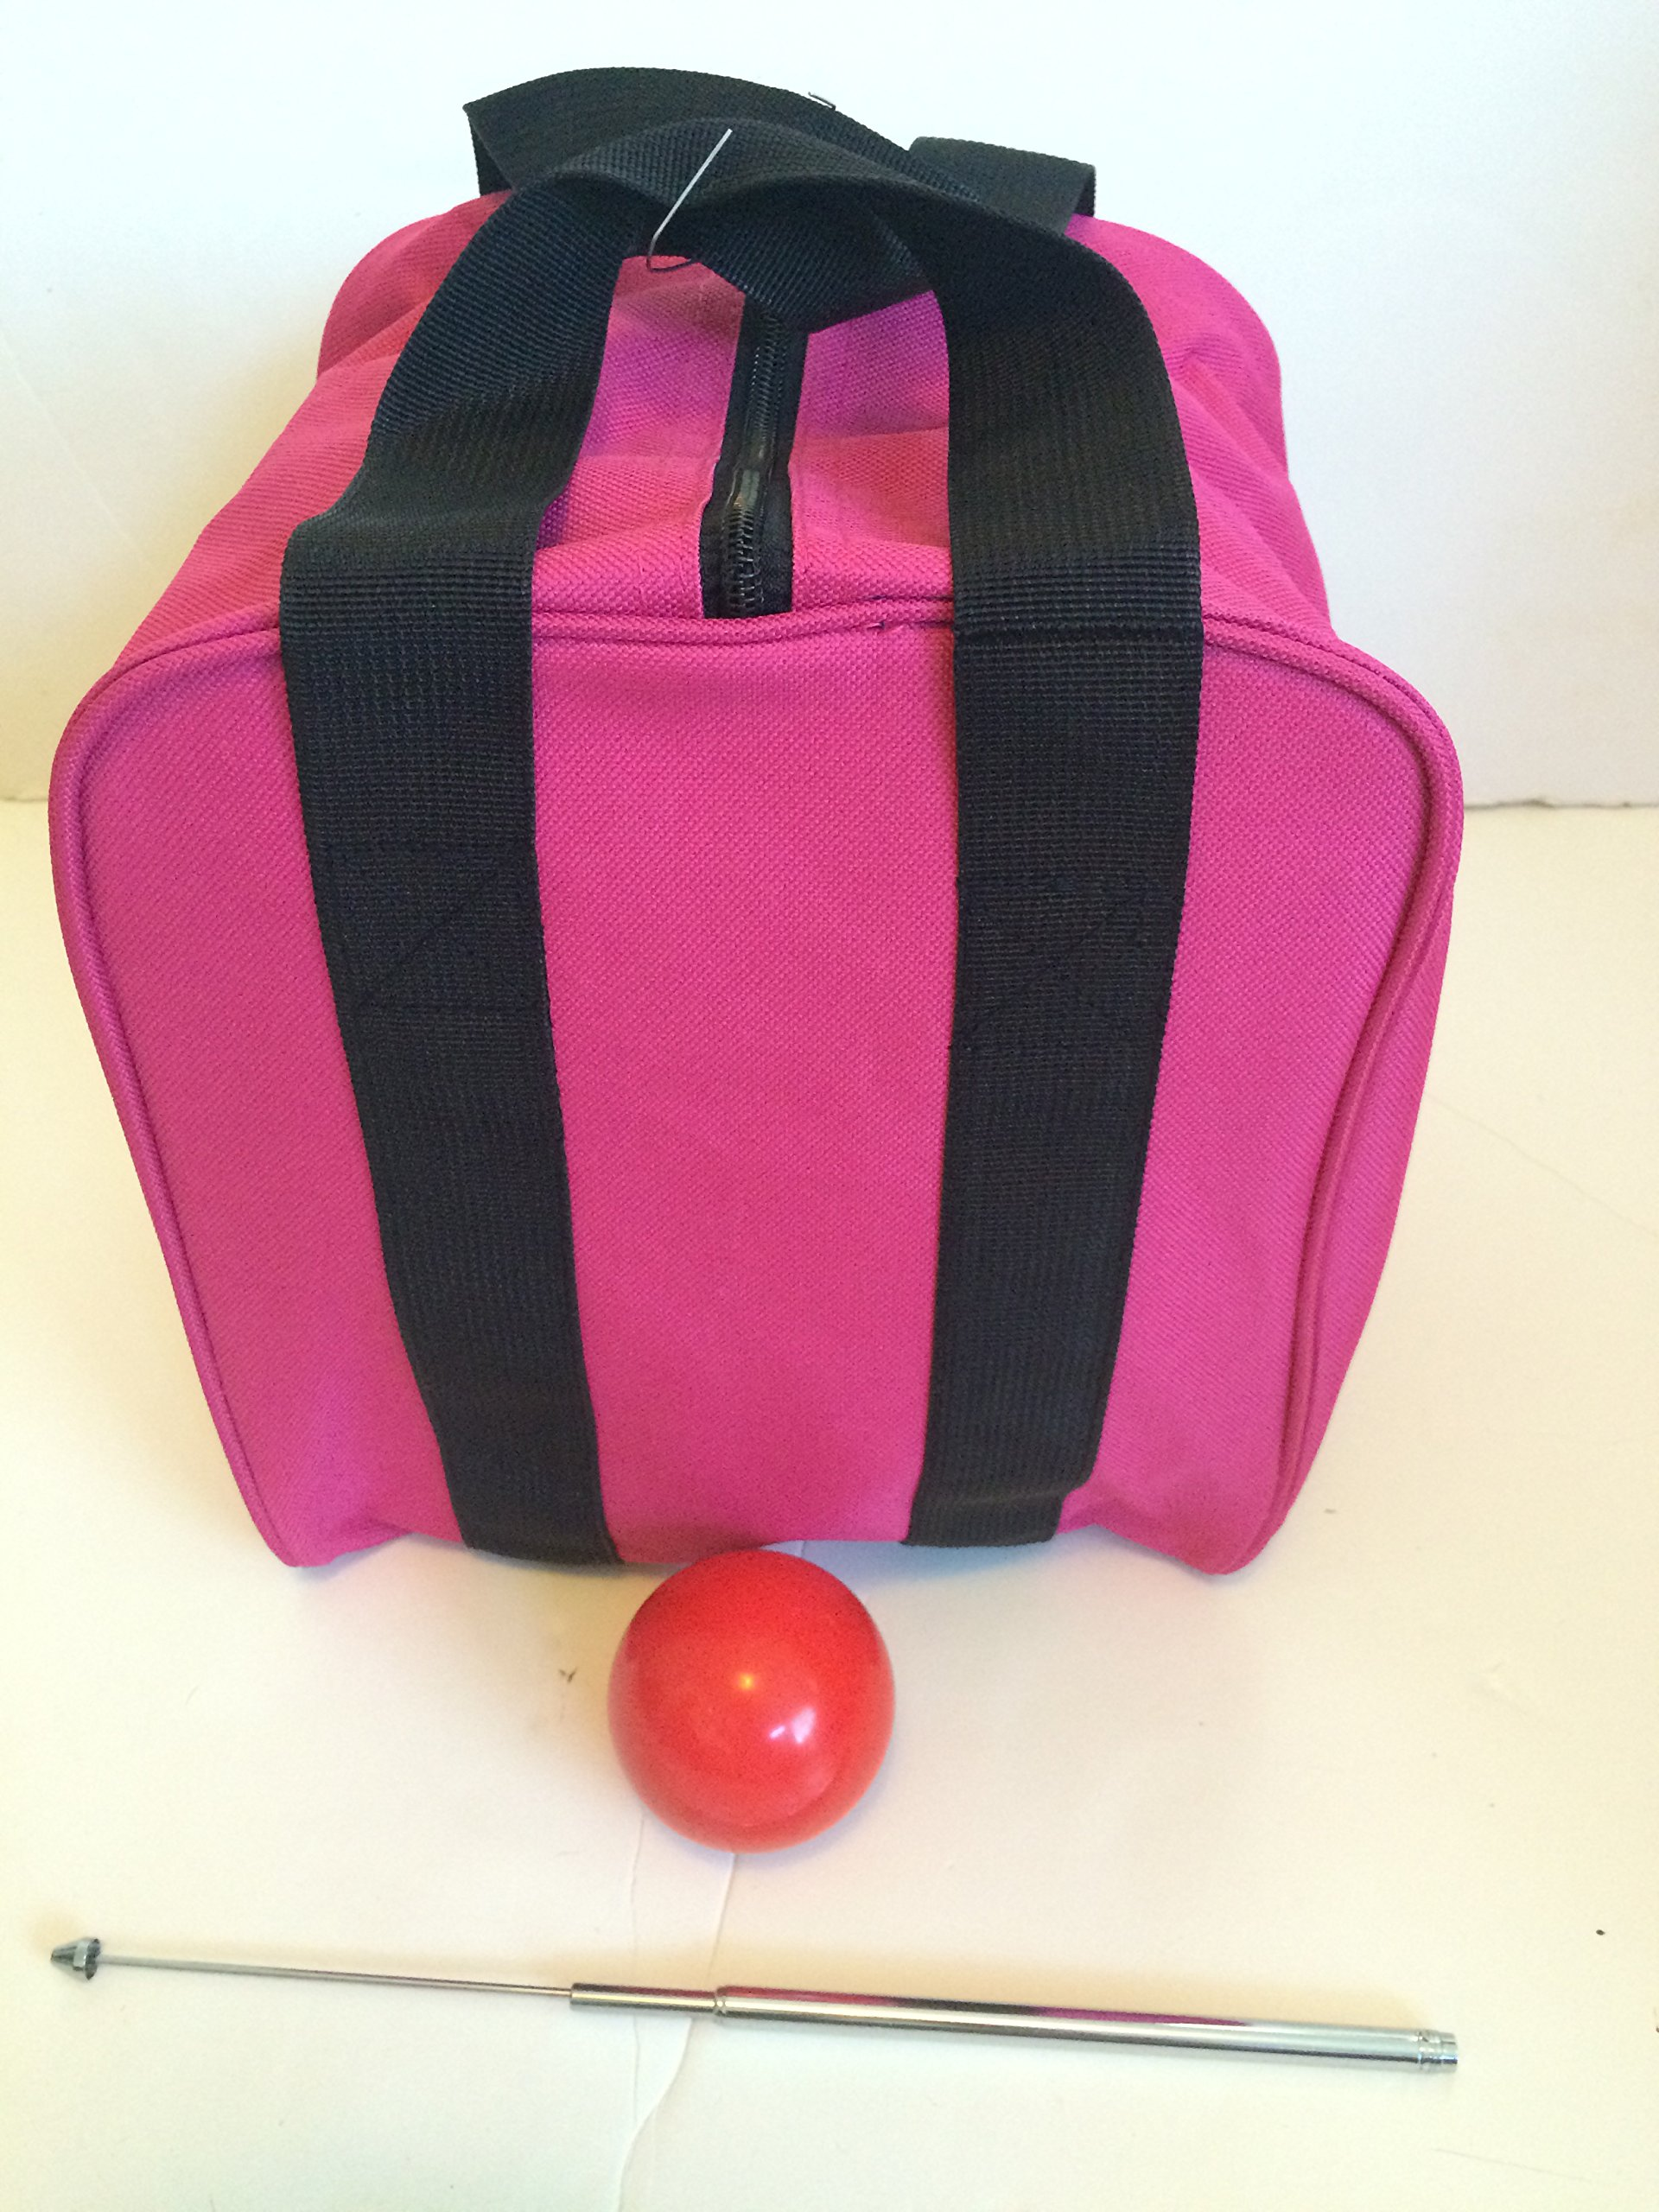 Unique Bocce Accessories Package - Extra Heavy Duty Nylon Bocce Bag (Pink with Black Handles), red pallina, Extendable Measuring Device